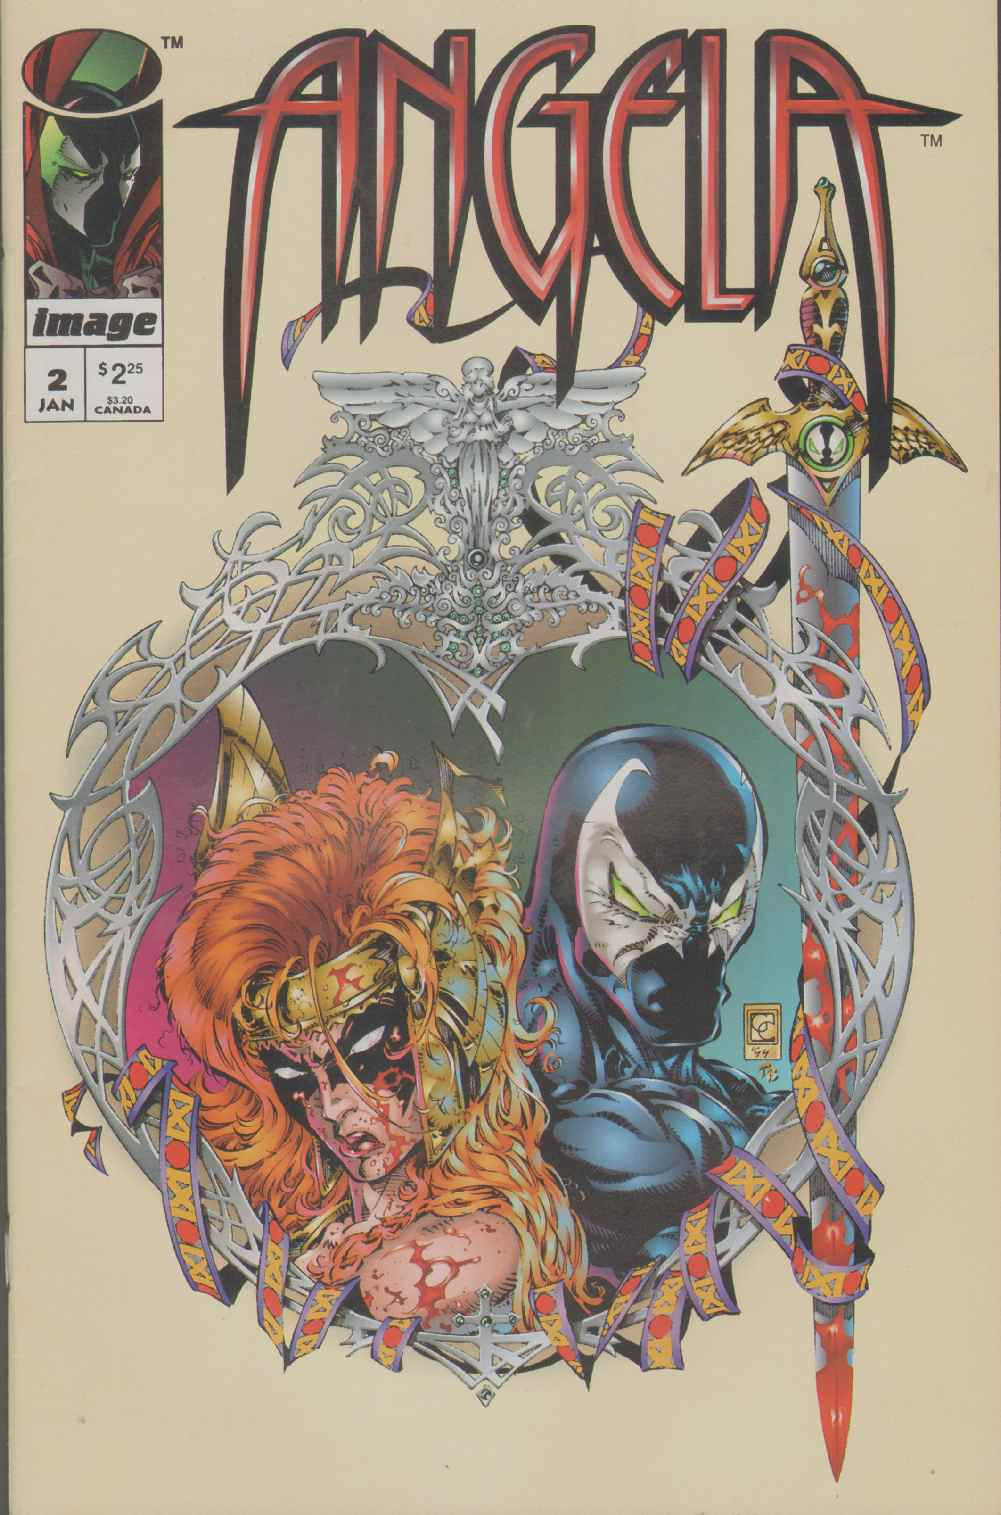 ANGELA  (1995) #2 Does Not Include Pinup., Gaiman, Neil